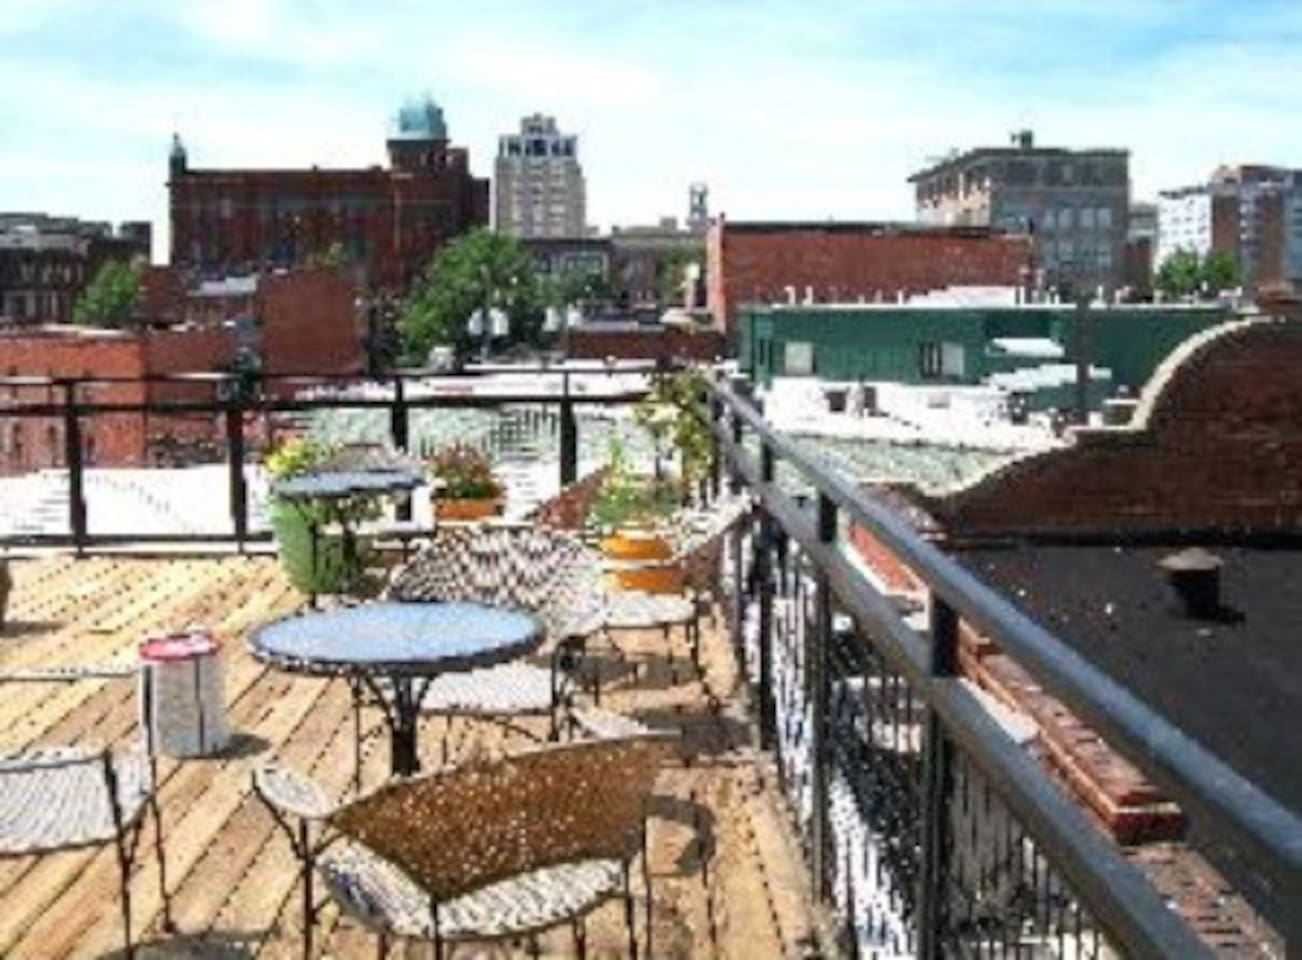 Accessibly rooftop deck and view